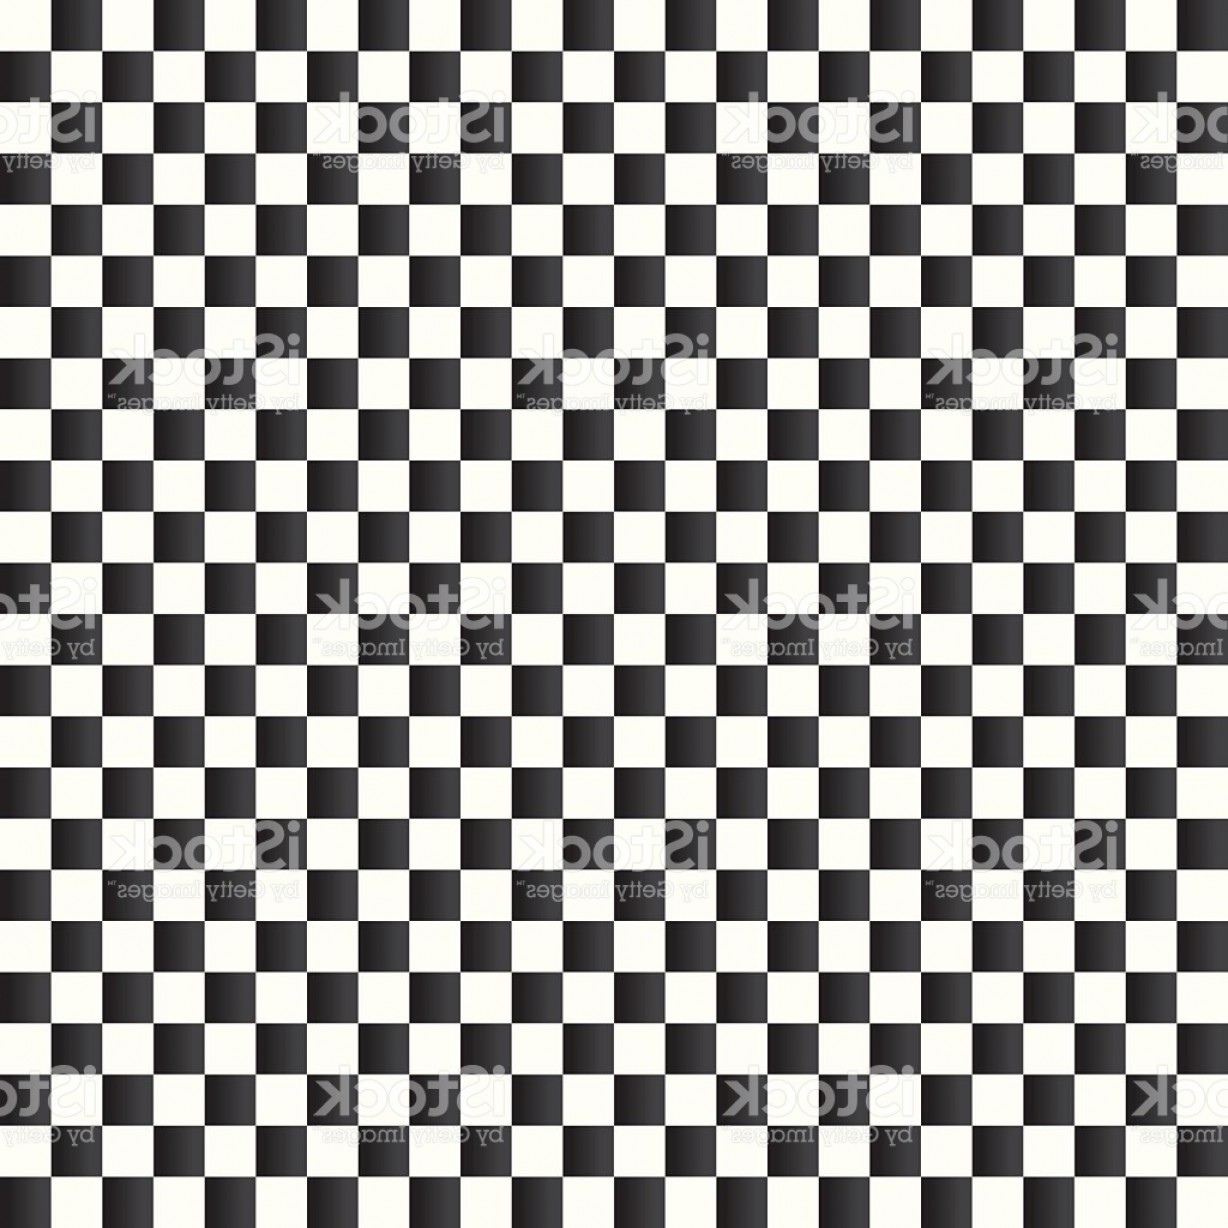 Checkered Flag Background Vector: Checkered Flag Background Seamless Chessboard Gm